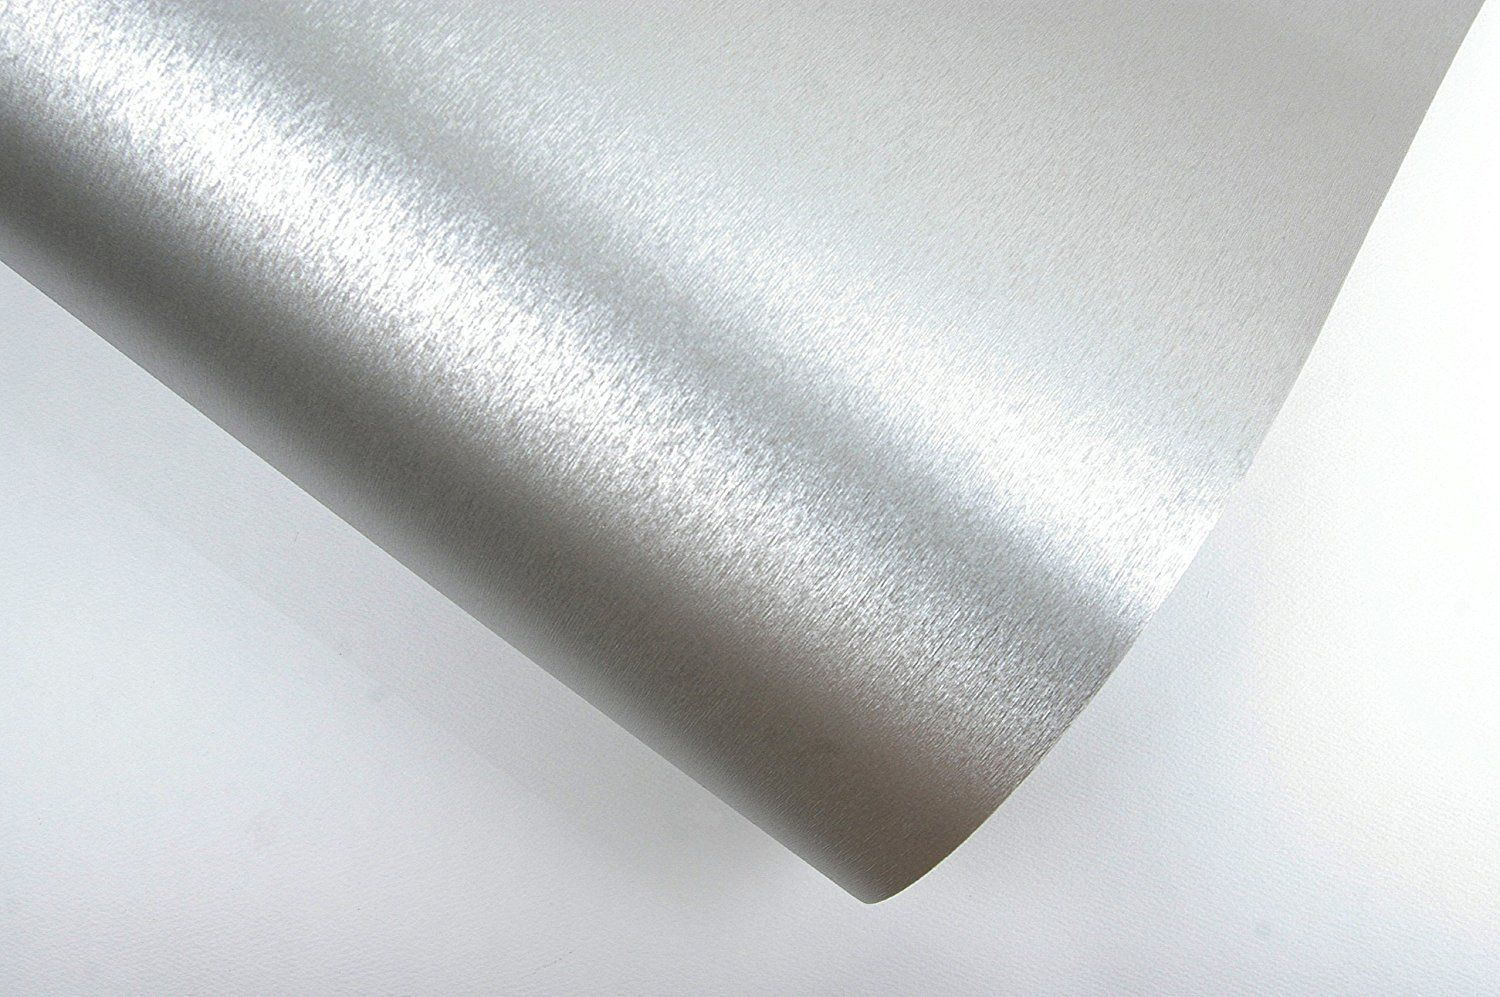 brushed metal look contact paper film vinyl self adhesive backing vinyl self adhesive backing waterproof metallic gloss shelf liner peel and stick wall decal for covering counter top kitchen cabinet x inch silver